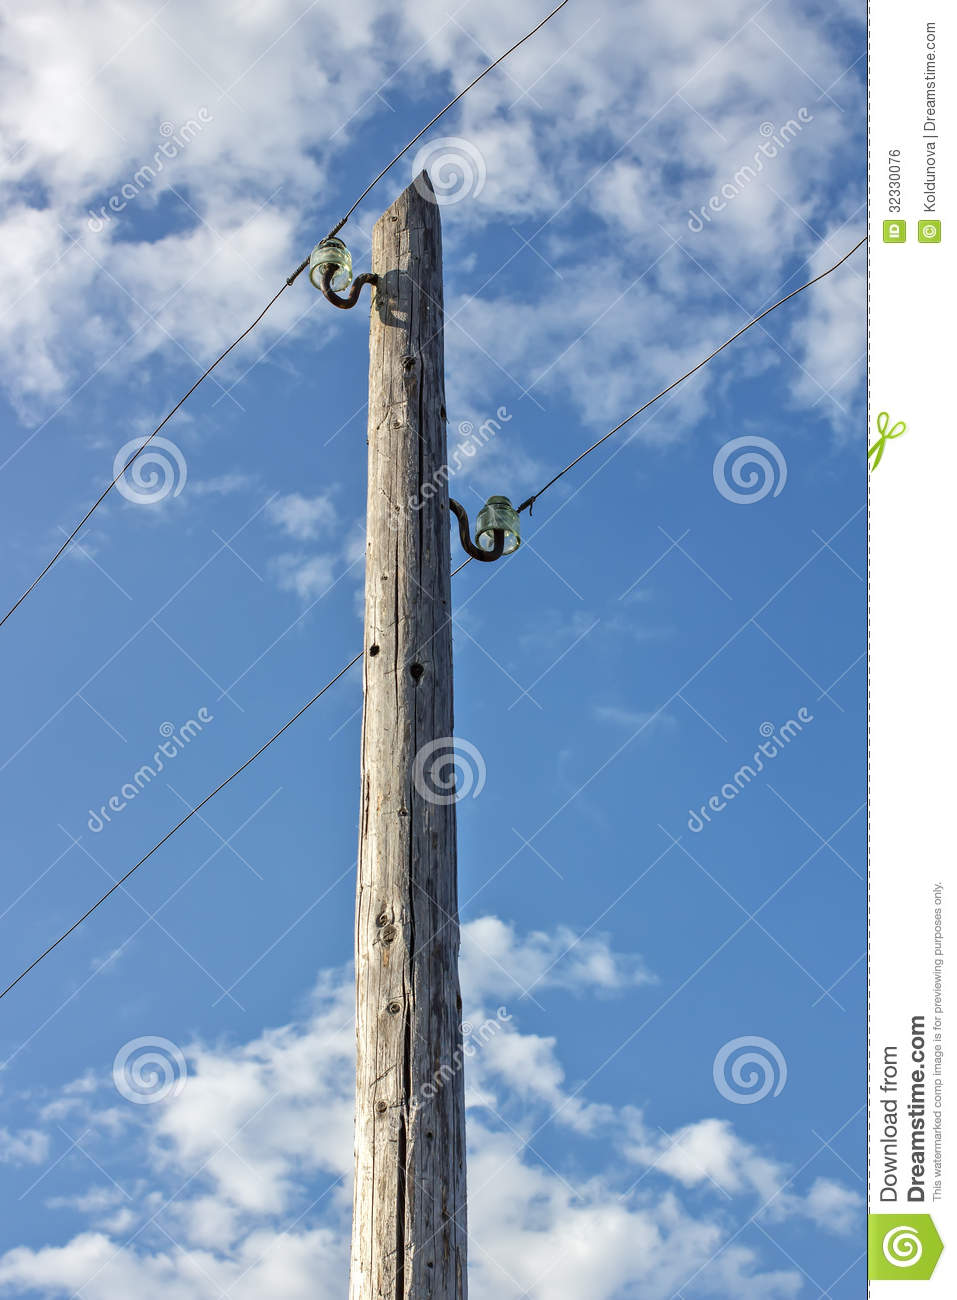 Types of electric poles in overhead transmission lines - Electrical